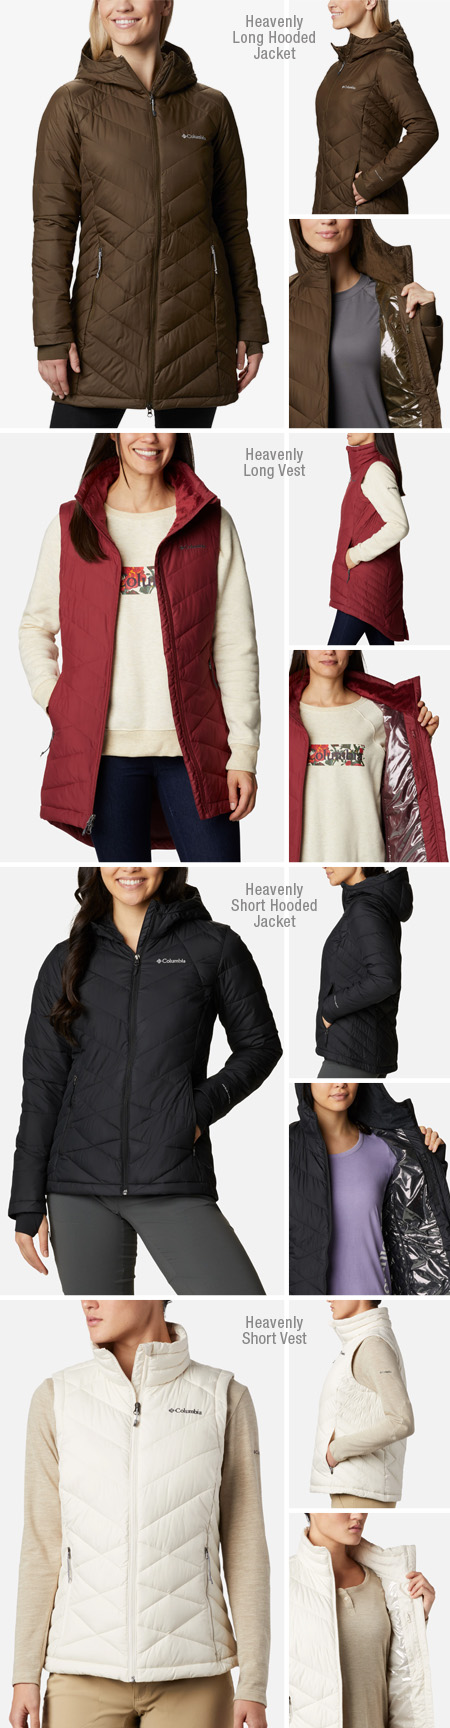 Columbia Heavenly jackets and vests products